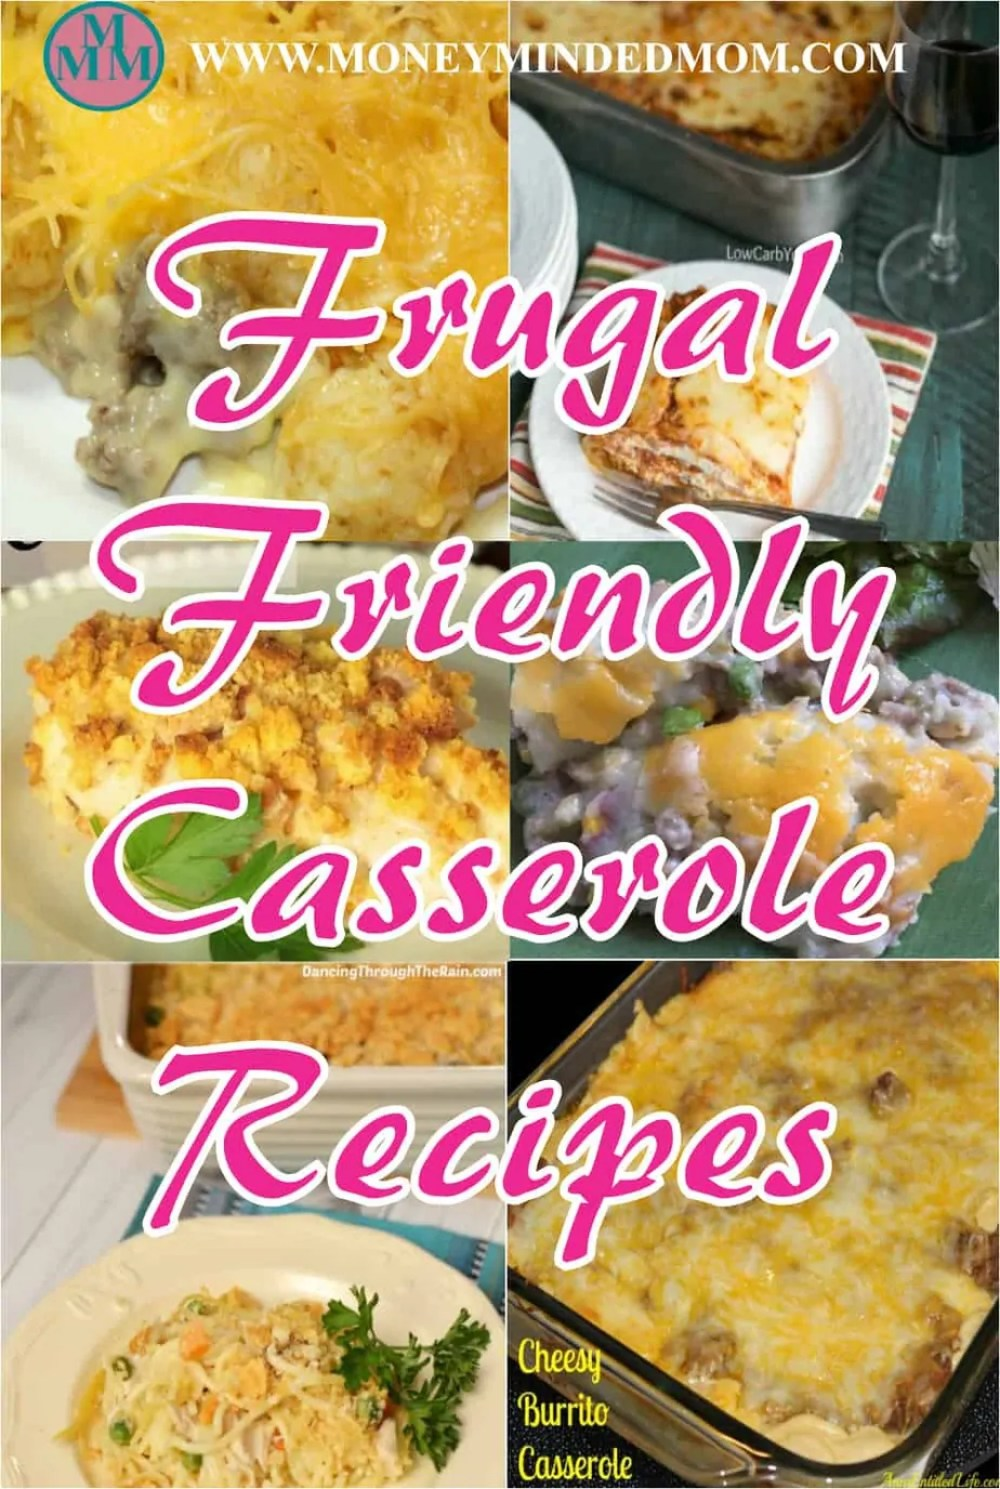 Frugal Friendly Casserole Recipes that are also kid friendly